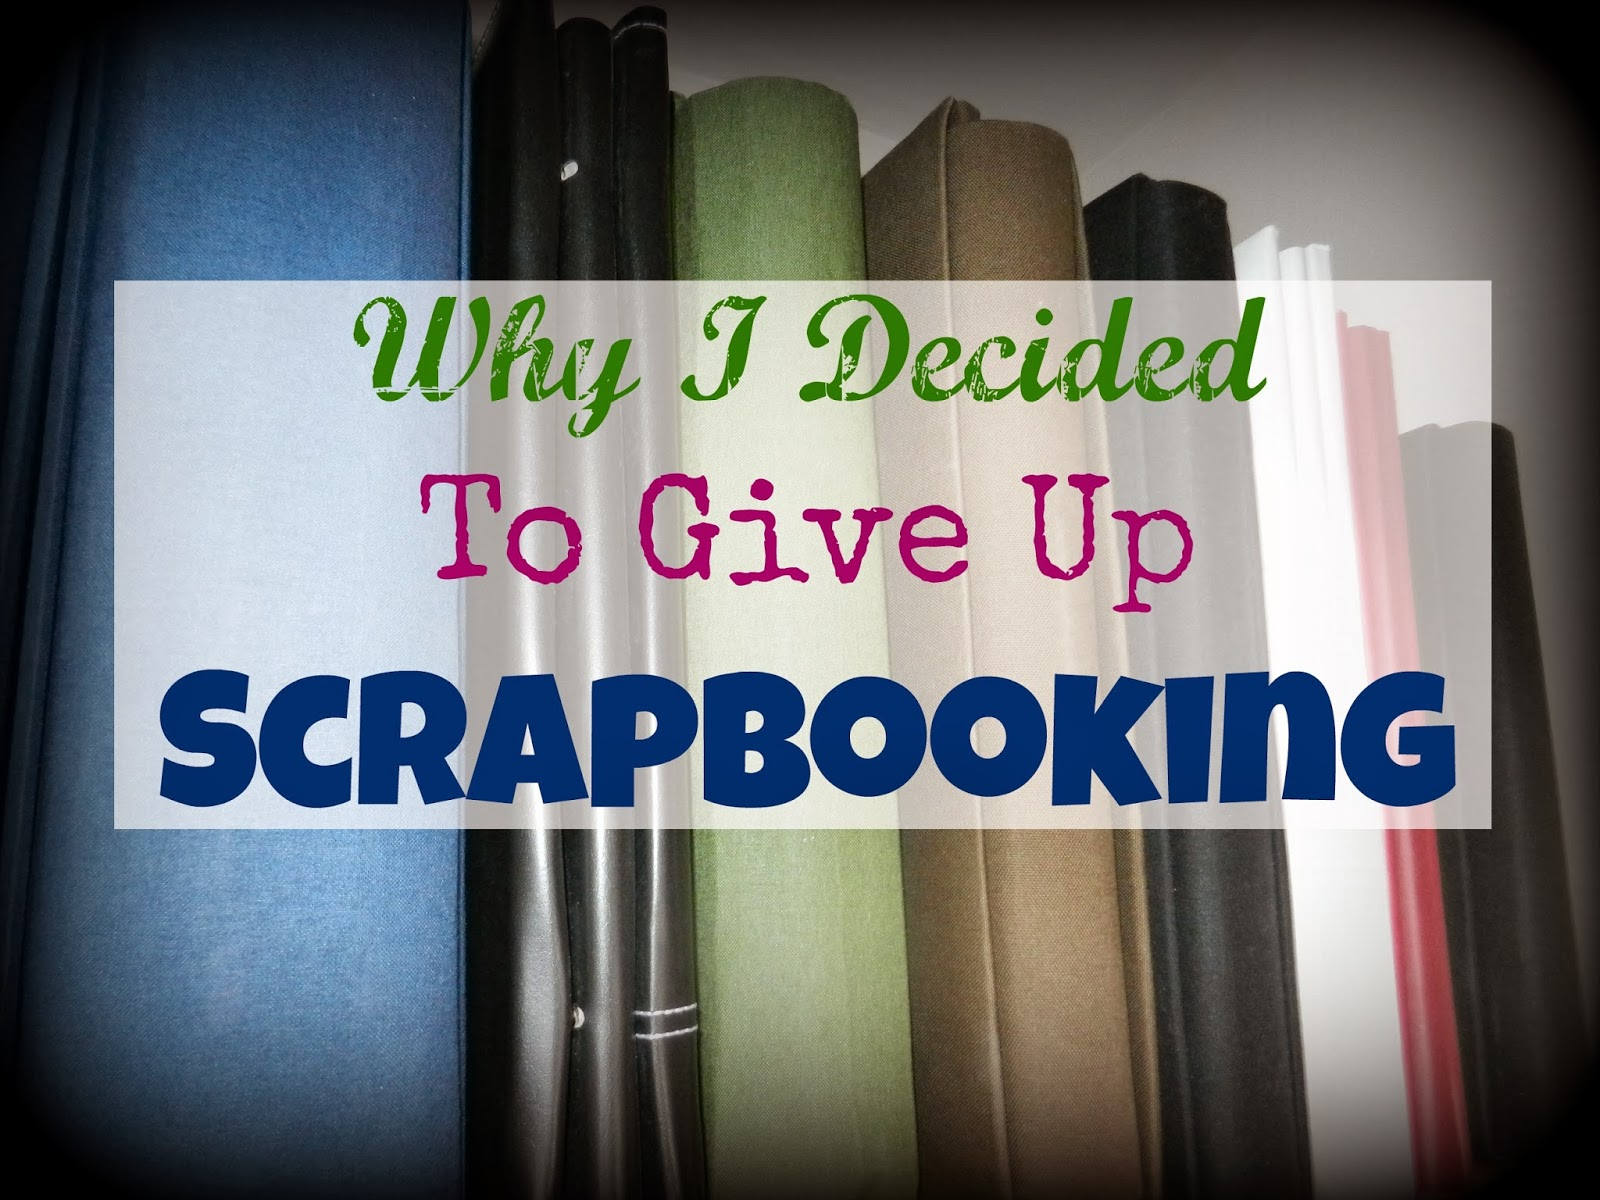 Why I Have Given Up Scrapbooking